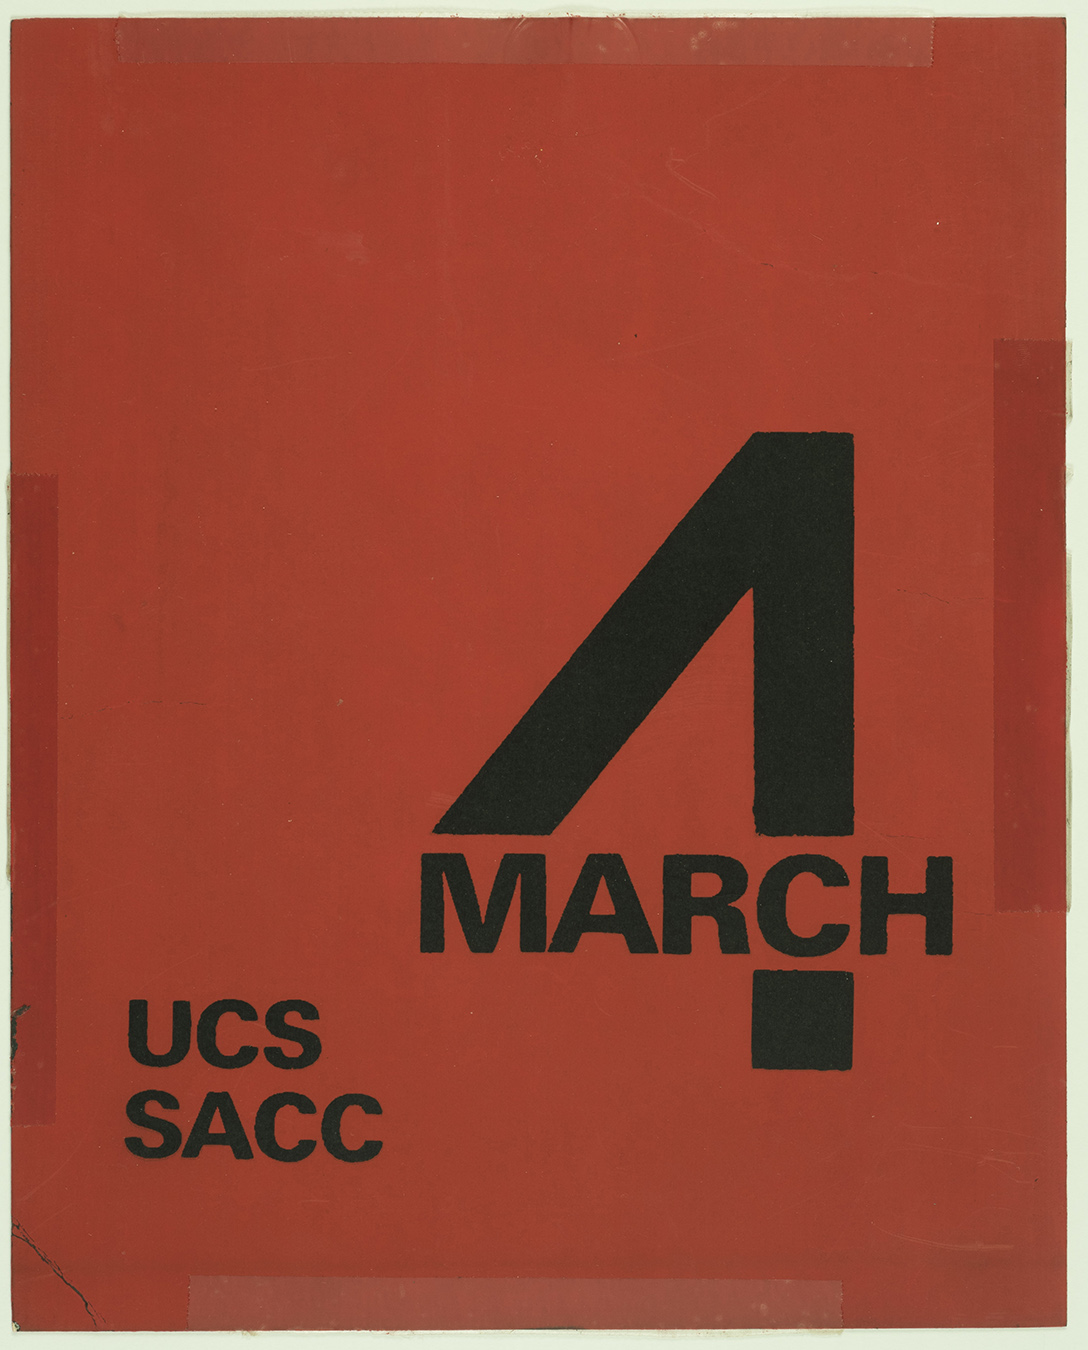 March 4, UCS, SACC sign, 1969, AC-0349, Box 1.